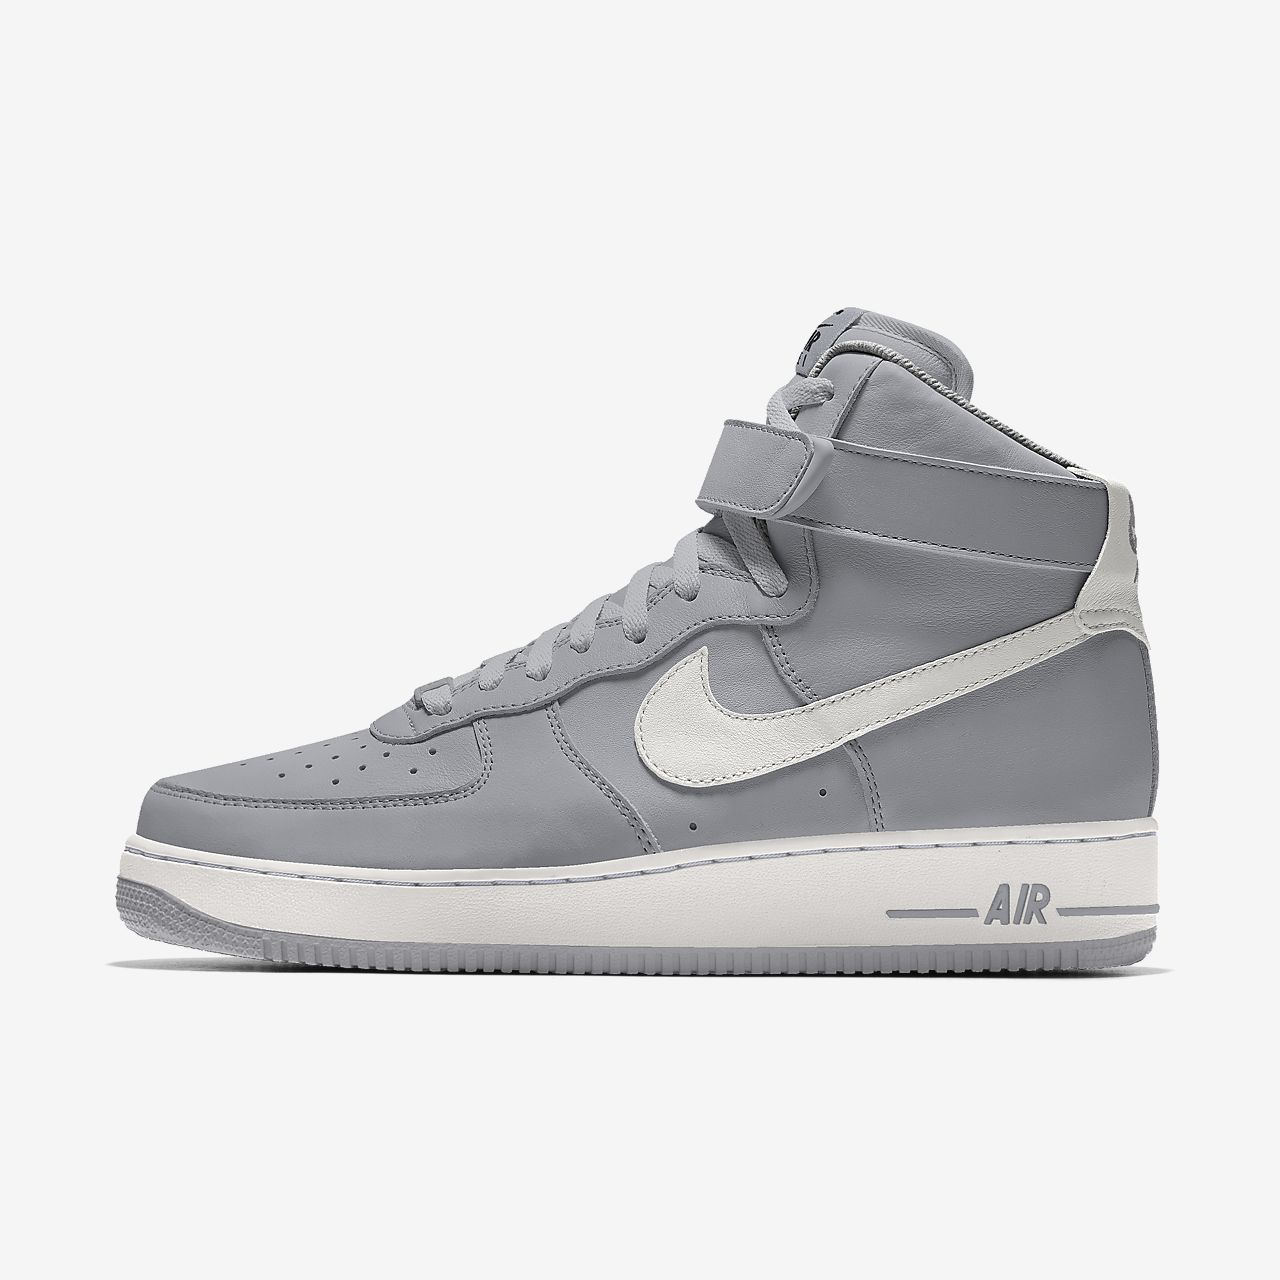 Cheap Real 2019 New Arrival Nike Air Force 1 Shoes ID